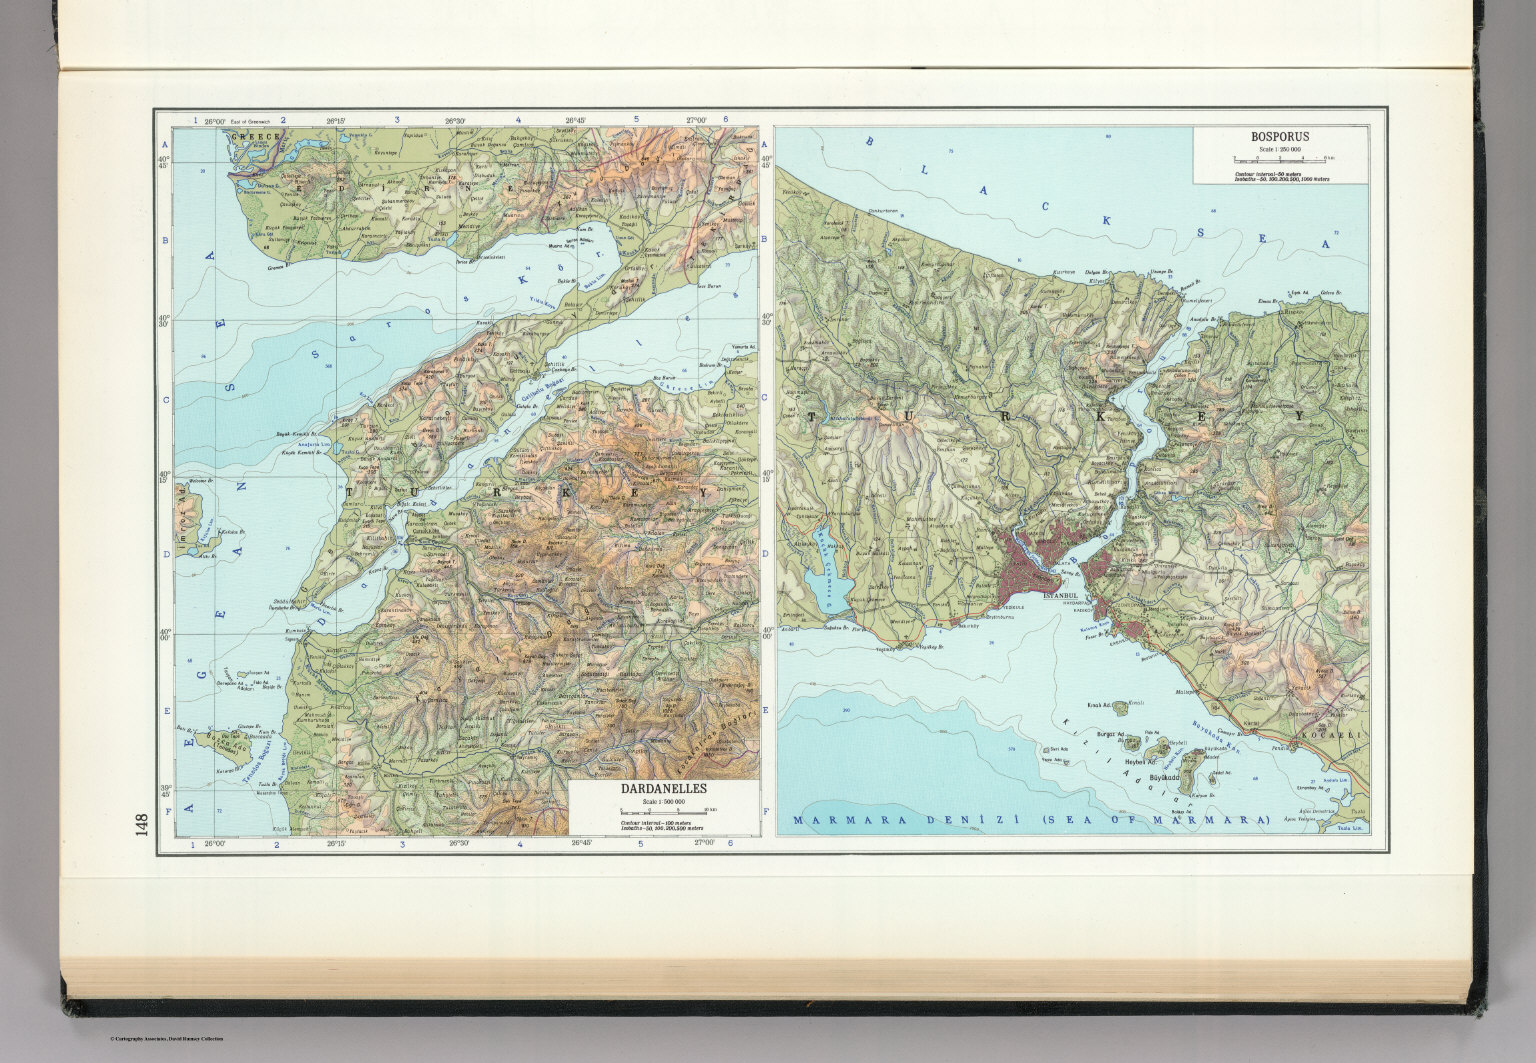 148 dardanelles bosporus the world atlas david rumsey the world atlas gumiabroncs Image collections